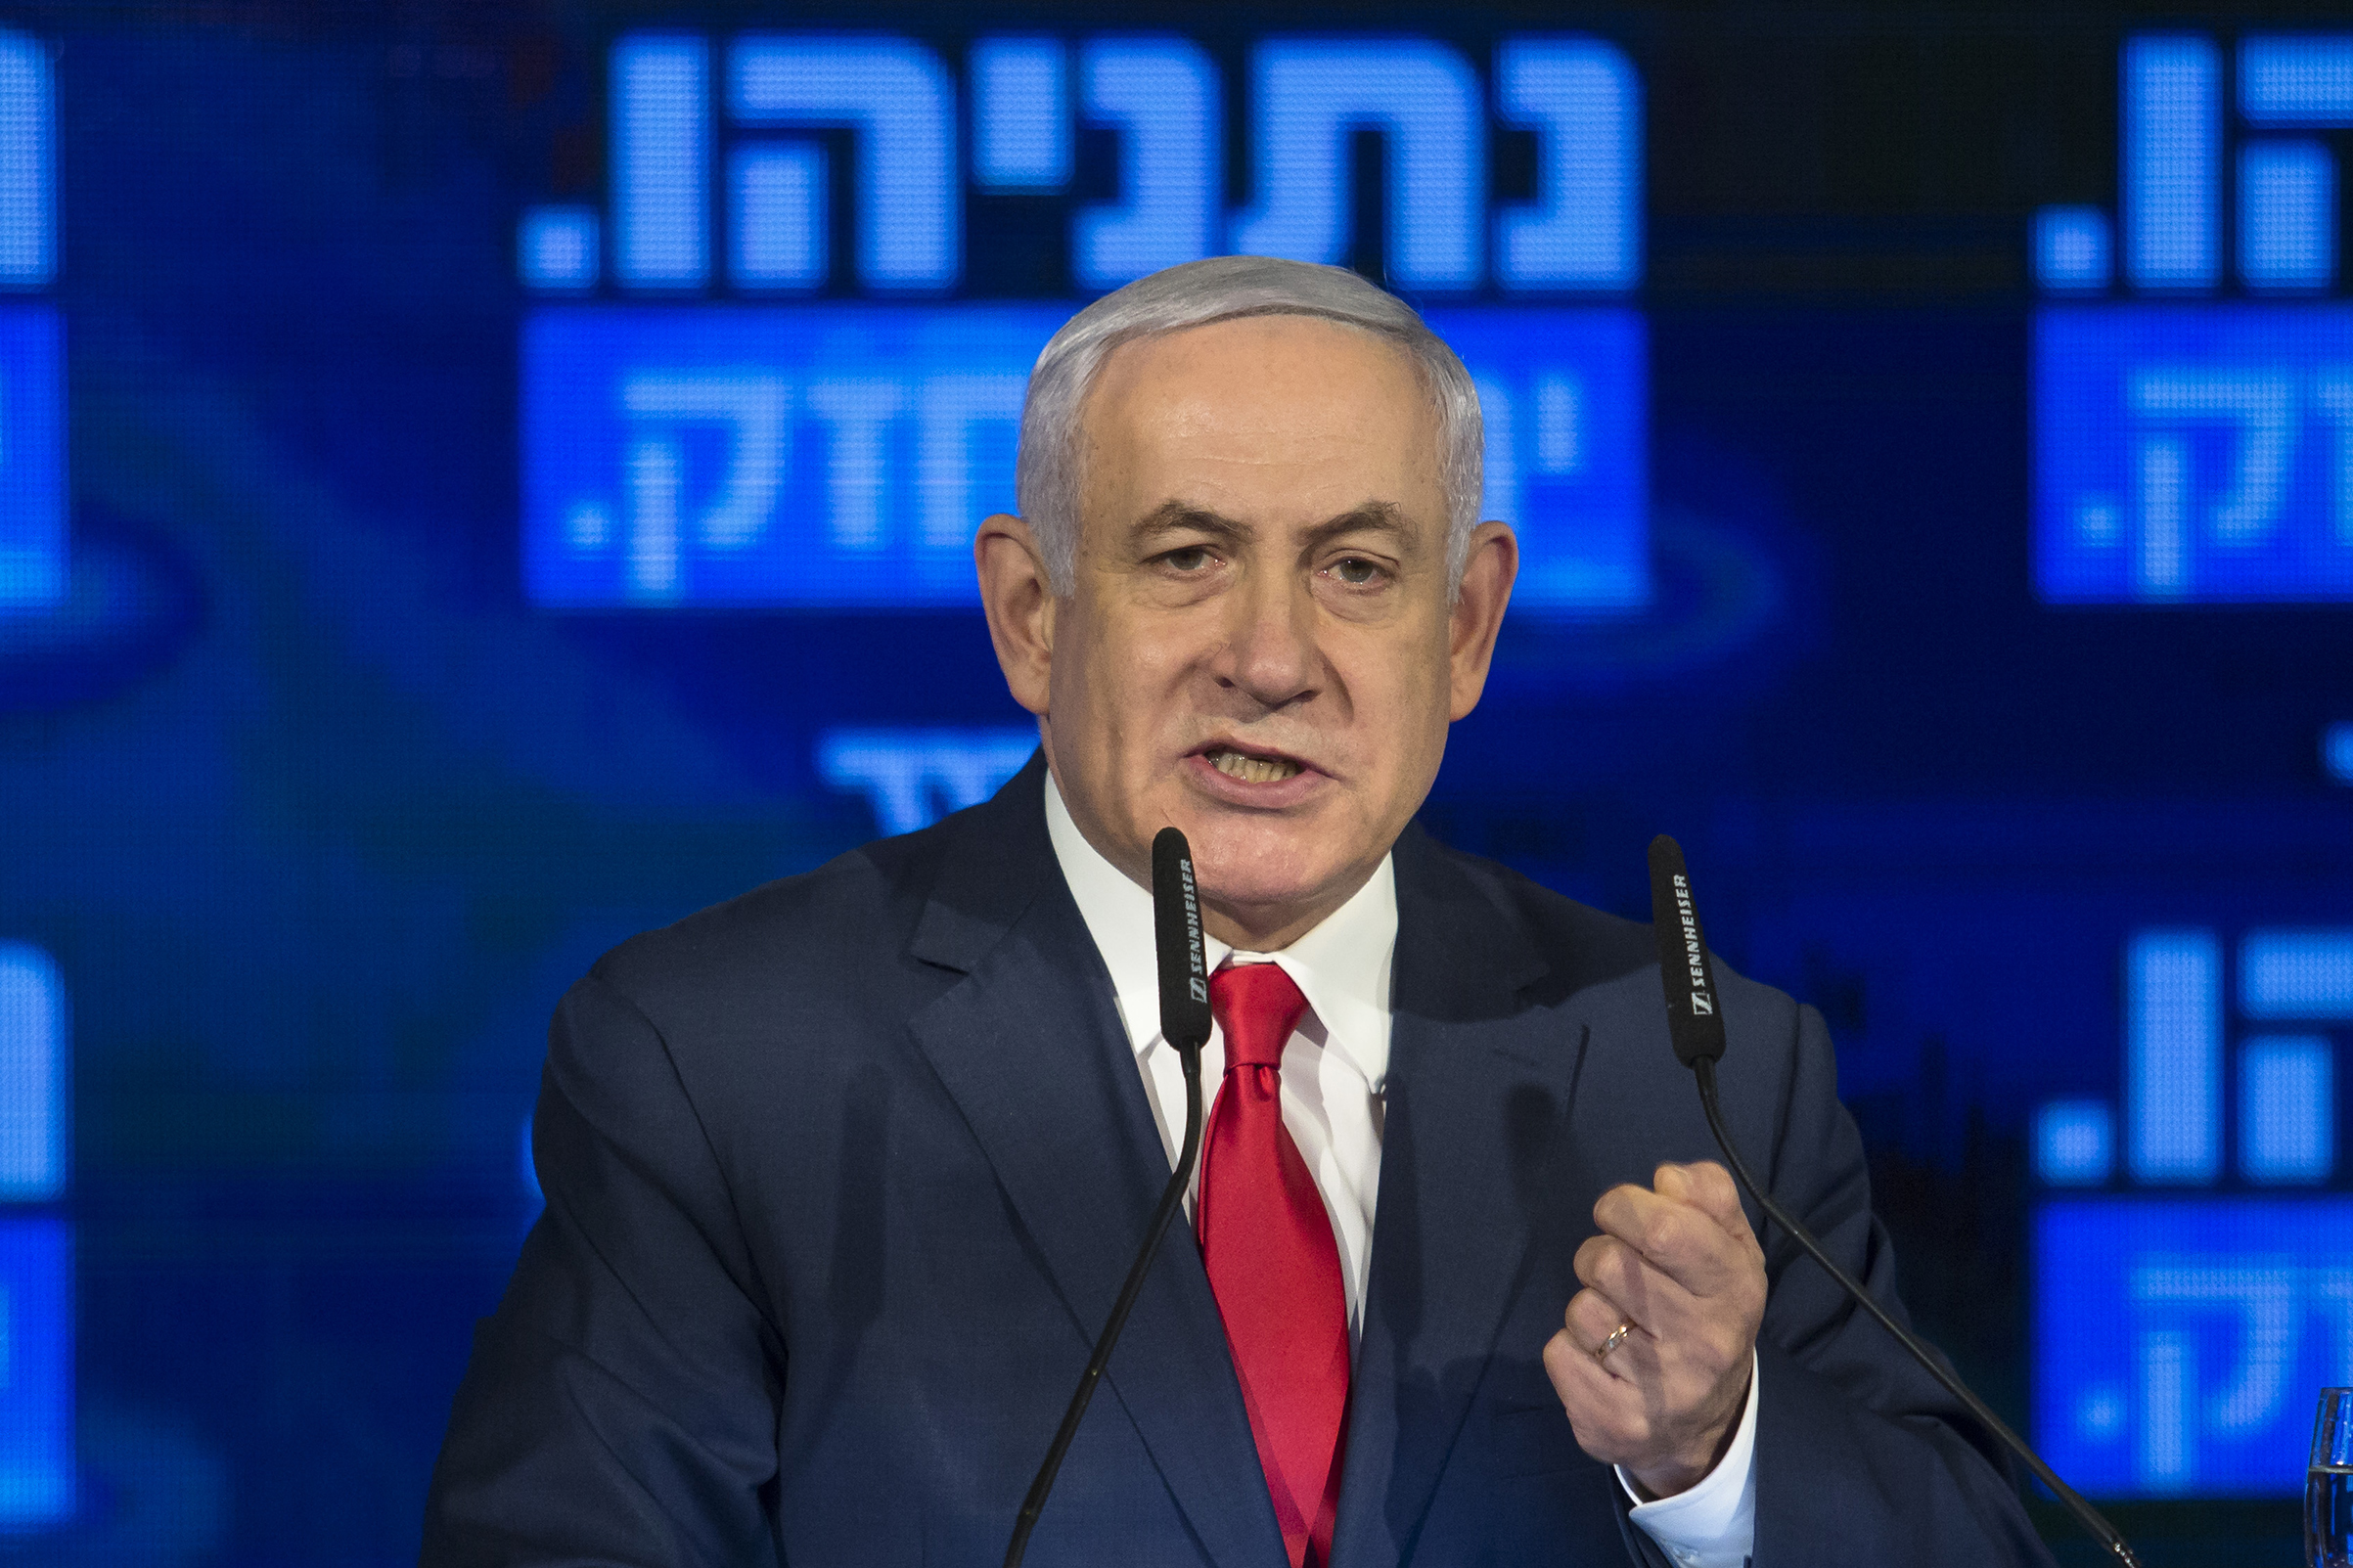 Israel's Prime Minster Benjamin Netanyahu delivers a speech on March 4, 2019